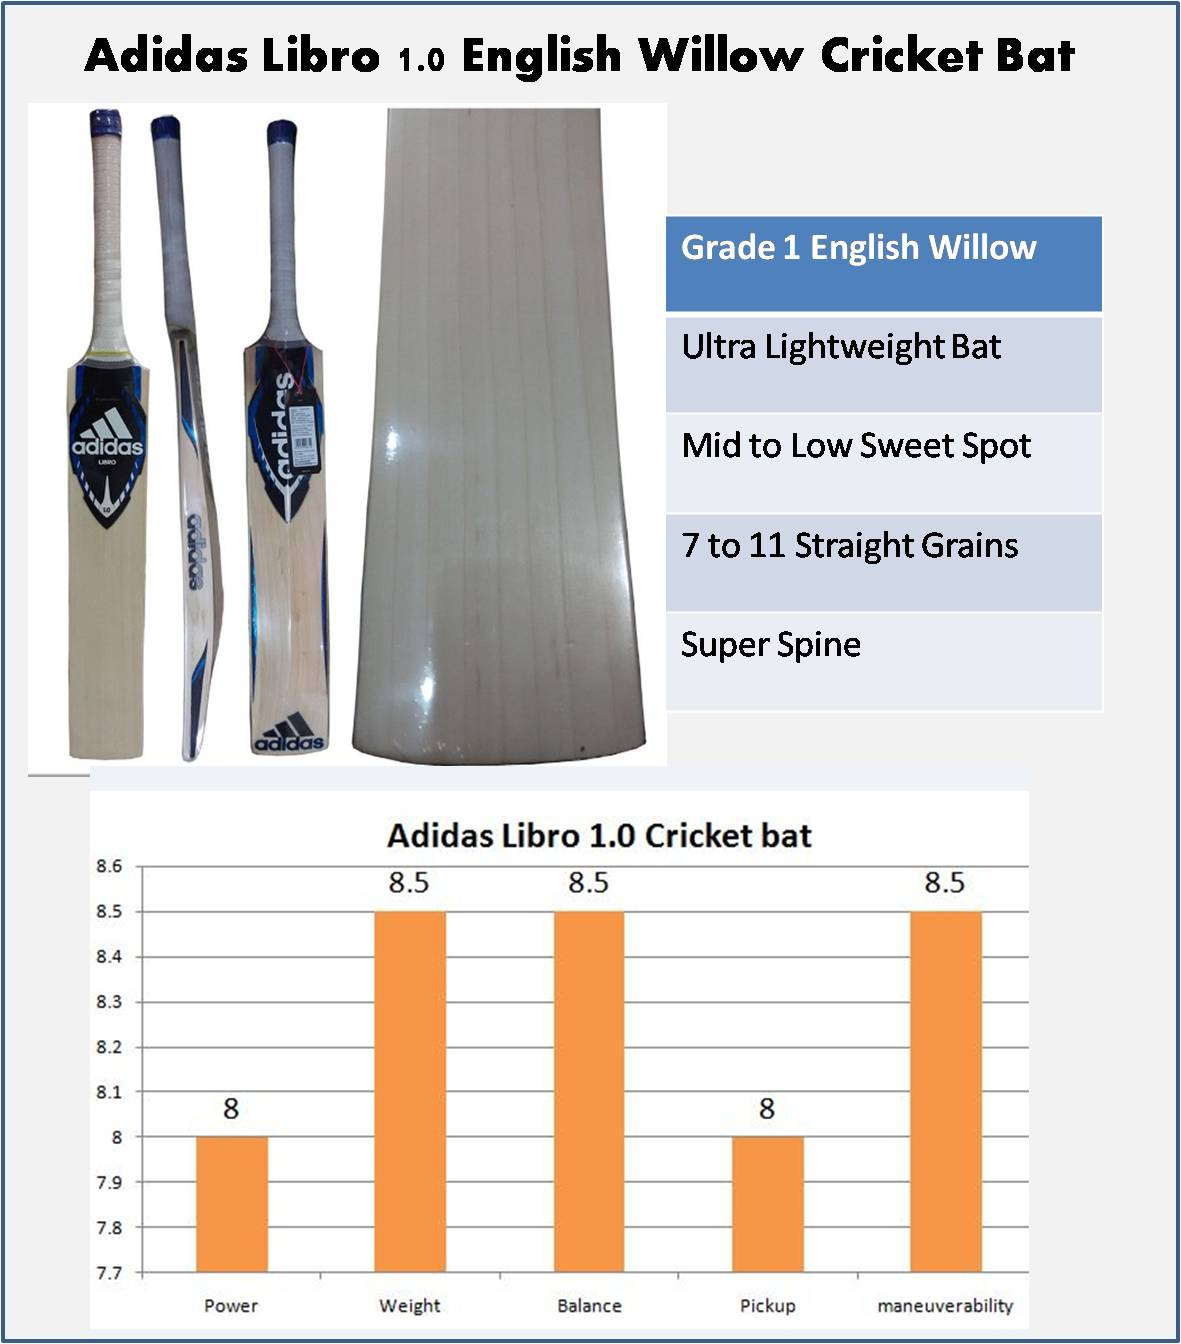 Detail Image of Adidas Libro 1.0 English Willow Cricket Bat